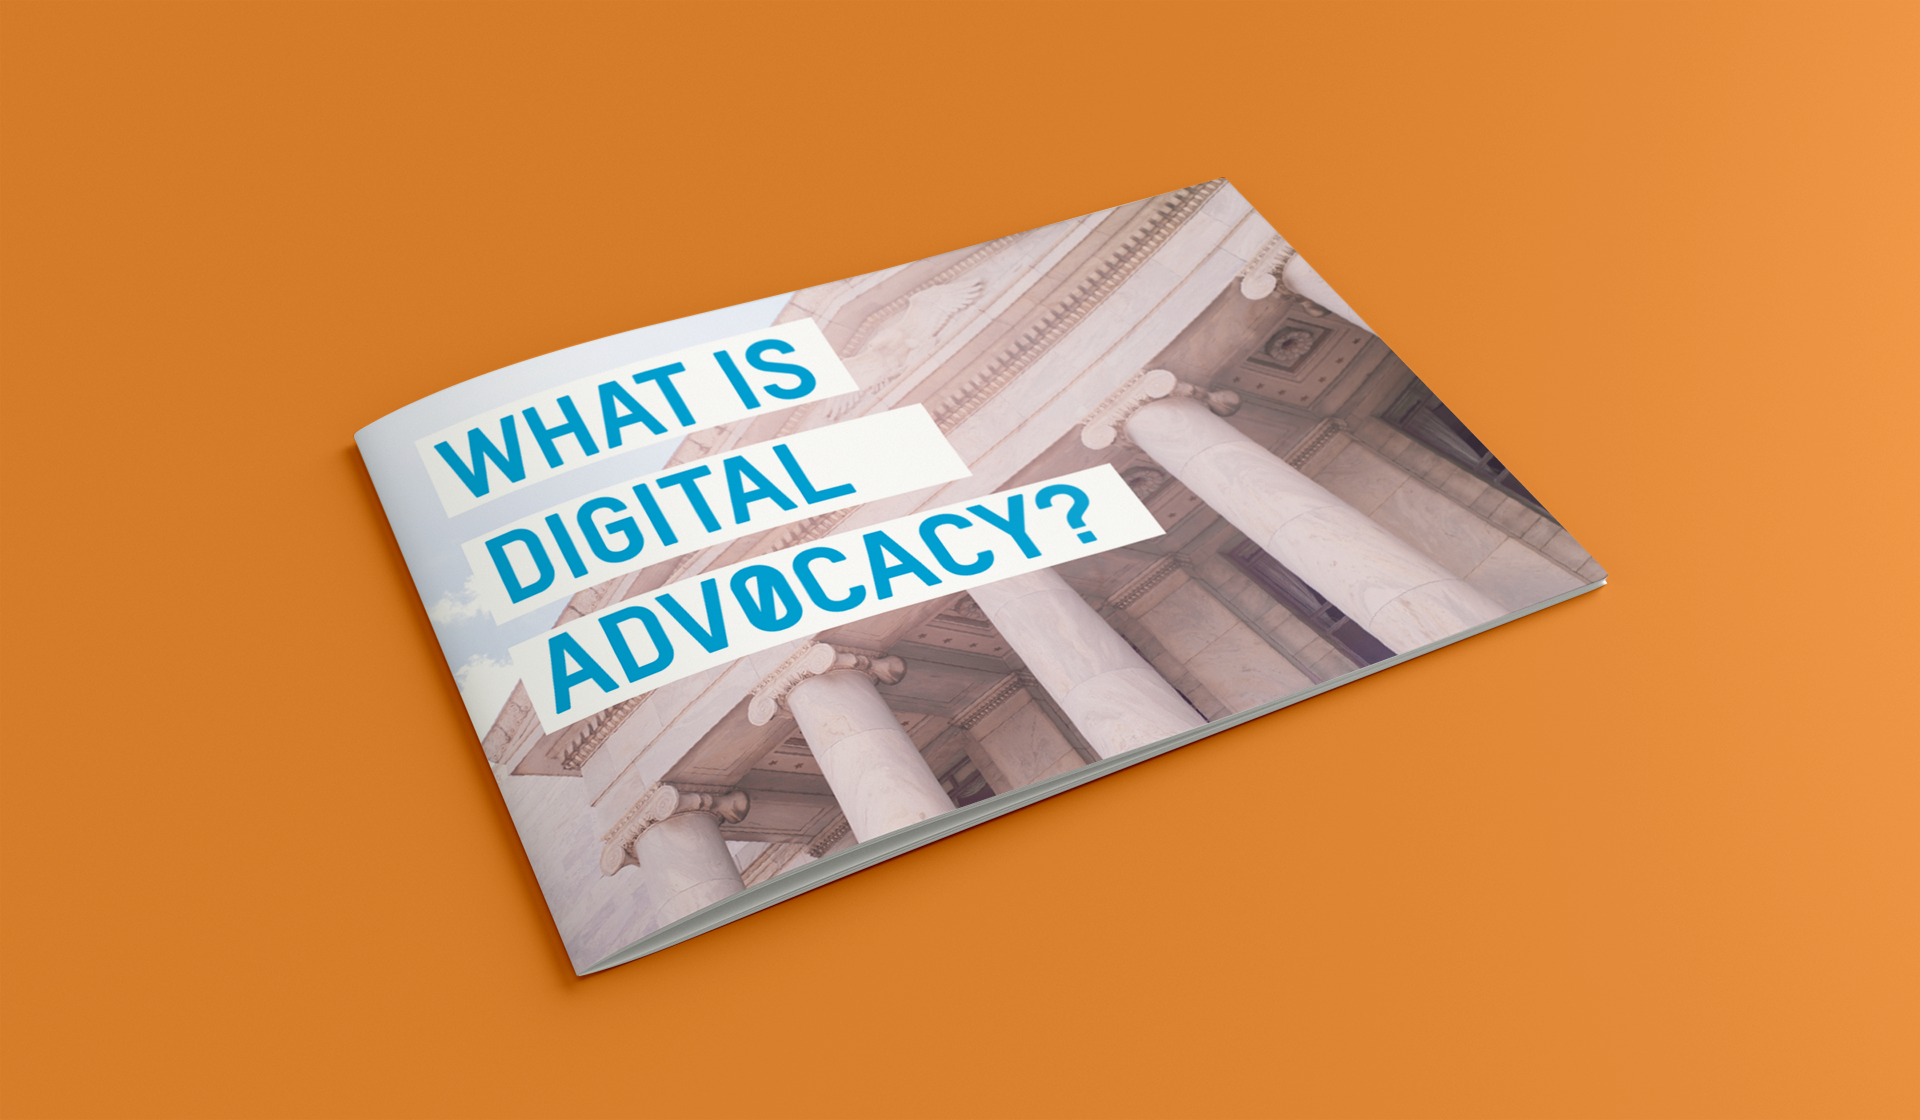 Digital_Advocacy_Ebook_bg